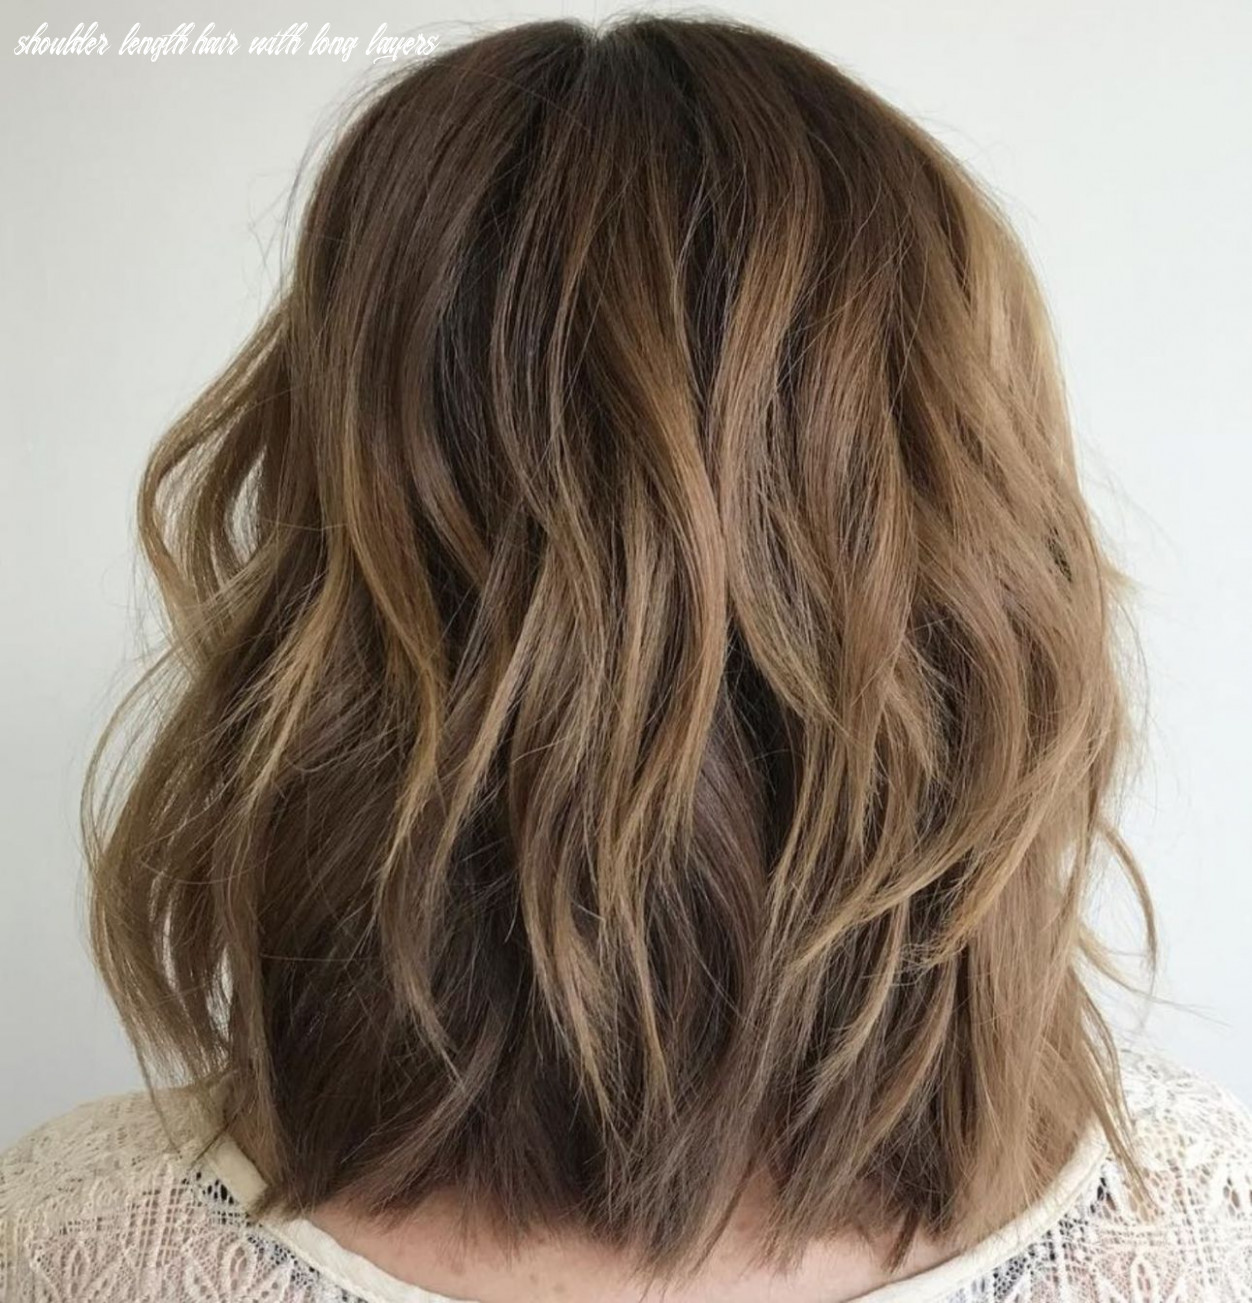 Pin on hairstyle for wedding shoulder length hair with long layers